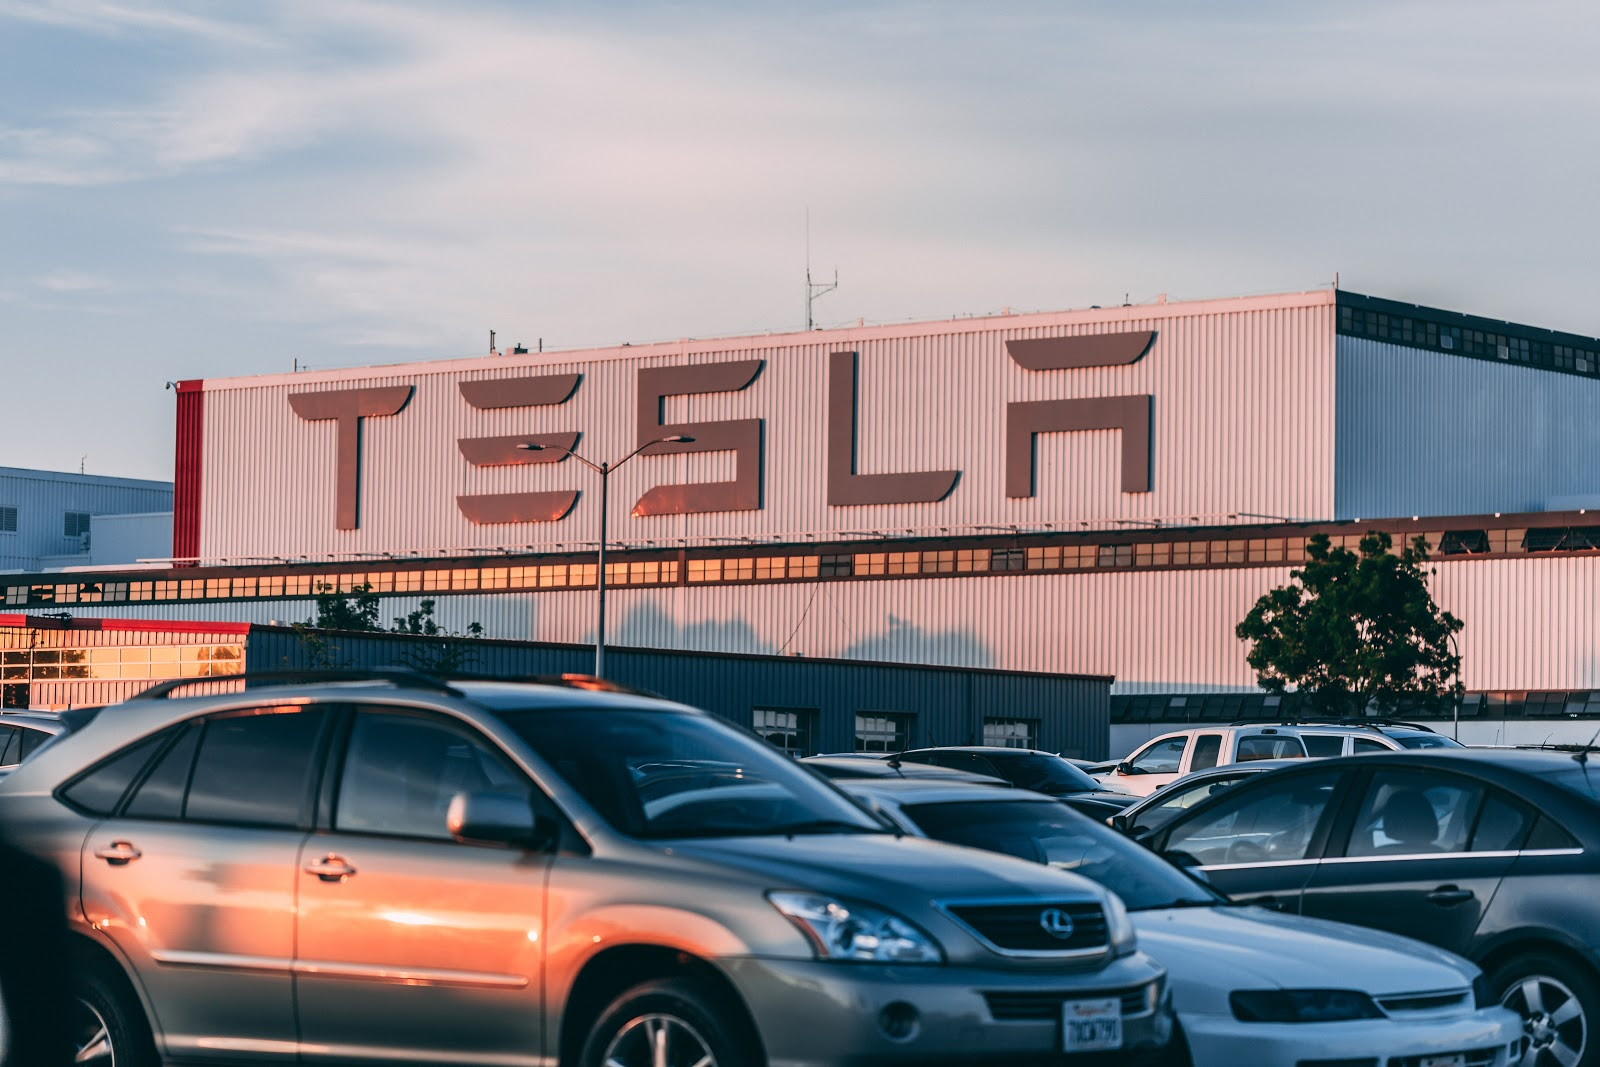 Tesla as an example of a DTC company